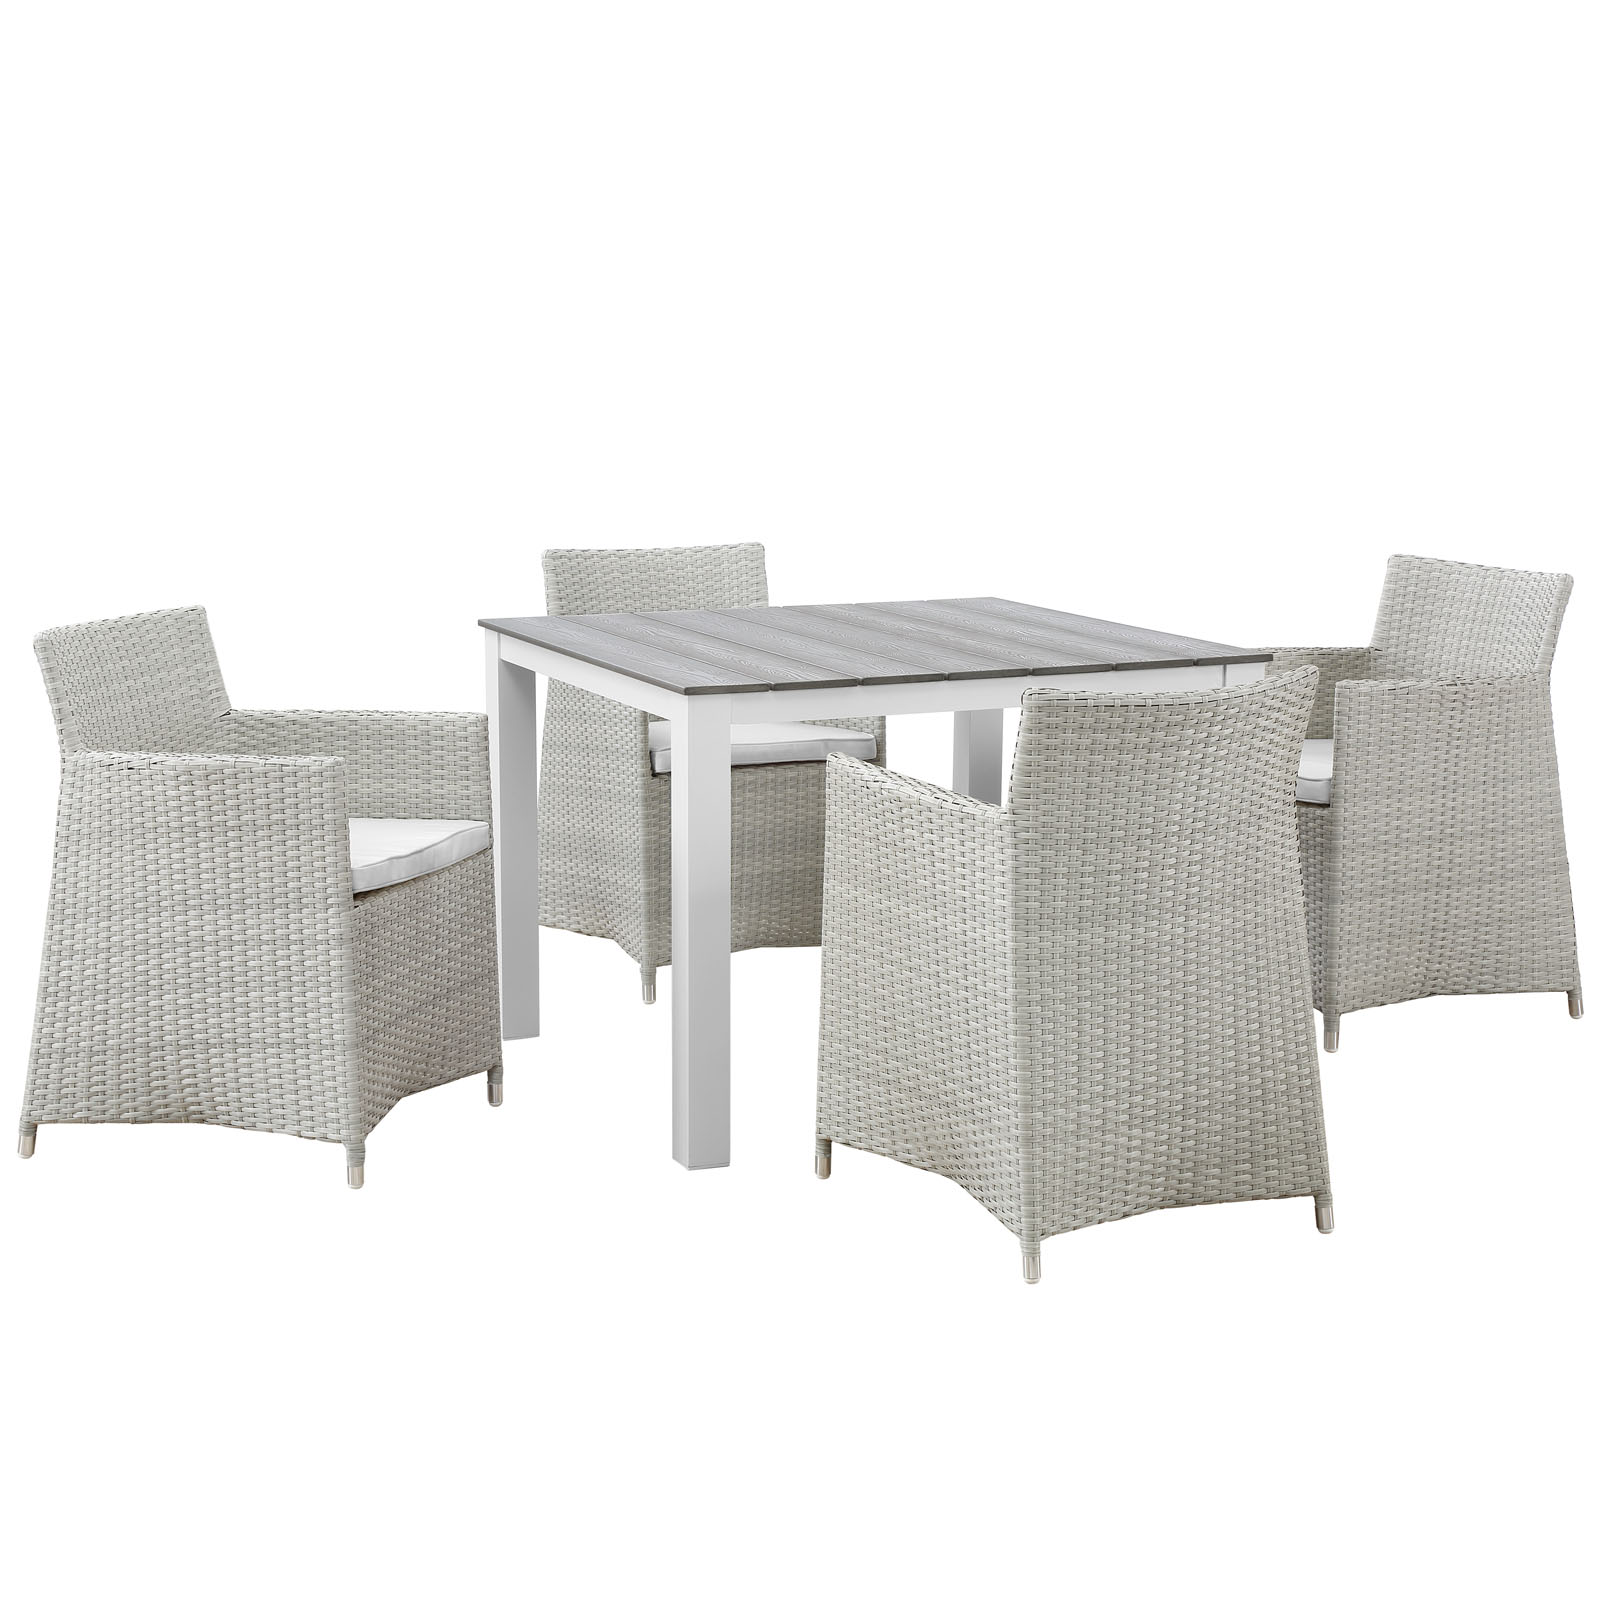 Modern Contemporary Five PCS Outdoor Patio Dining Room Set, White, Polywood, Aluminum by